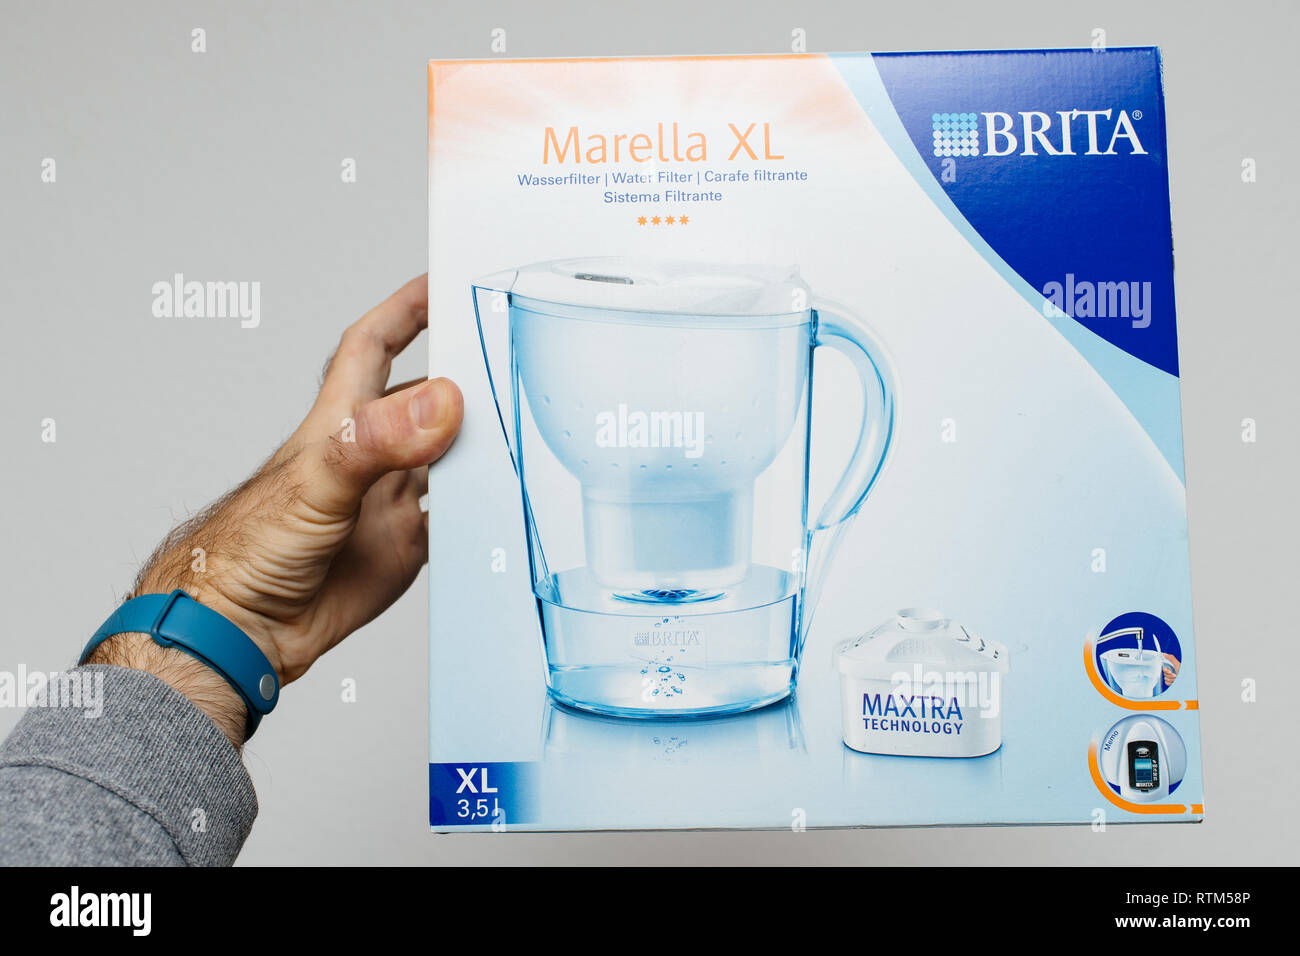 PARIS, FRANCE - DEC 18, 2017: Man holding New Brita Marella XL water filter against white background - Stock Image